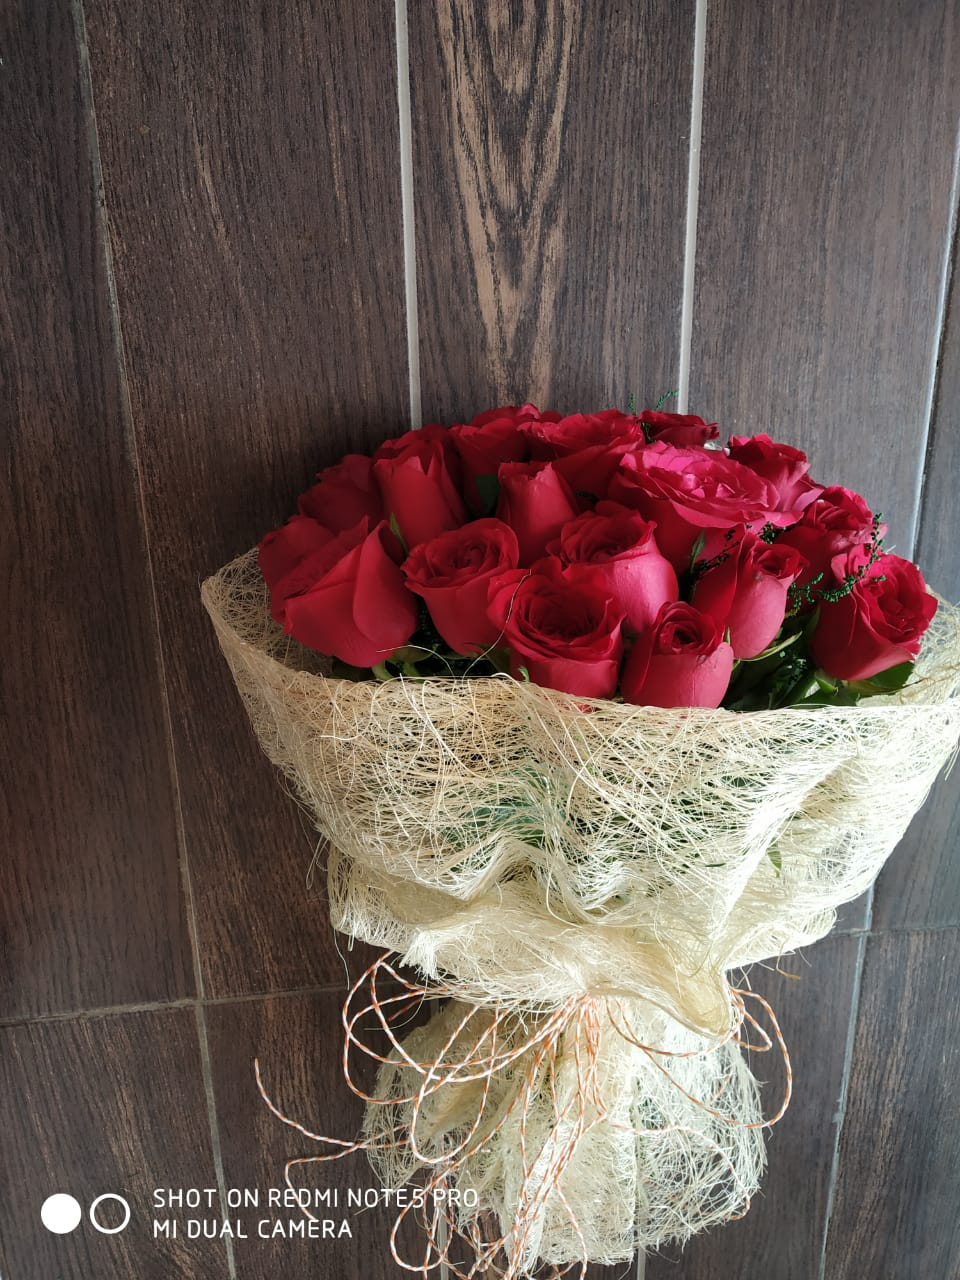 Cake Delivery Delhi University DelhiRed Roses in Jute